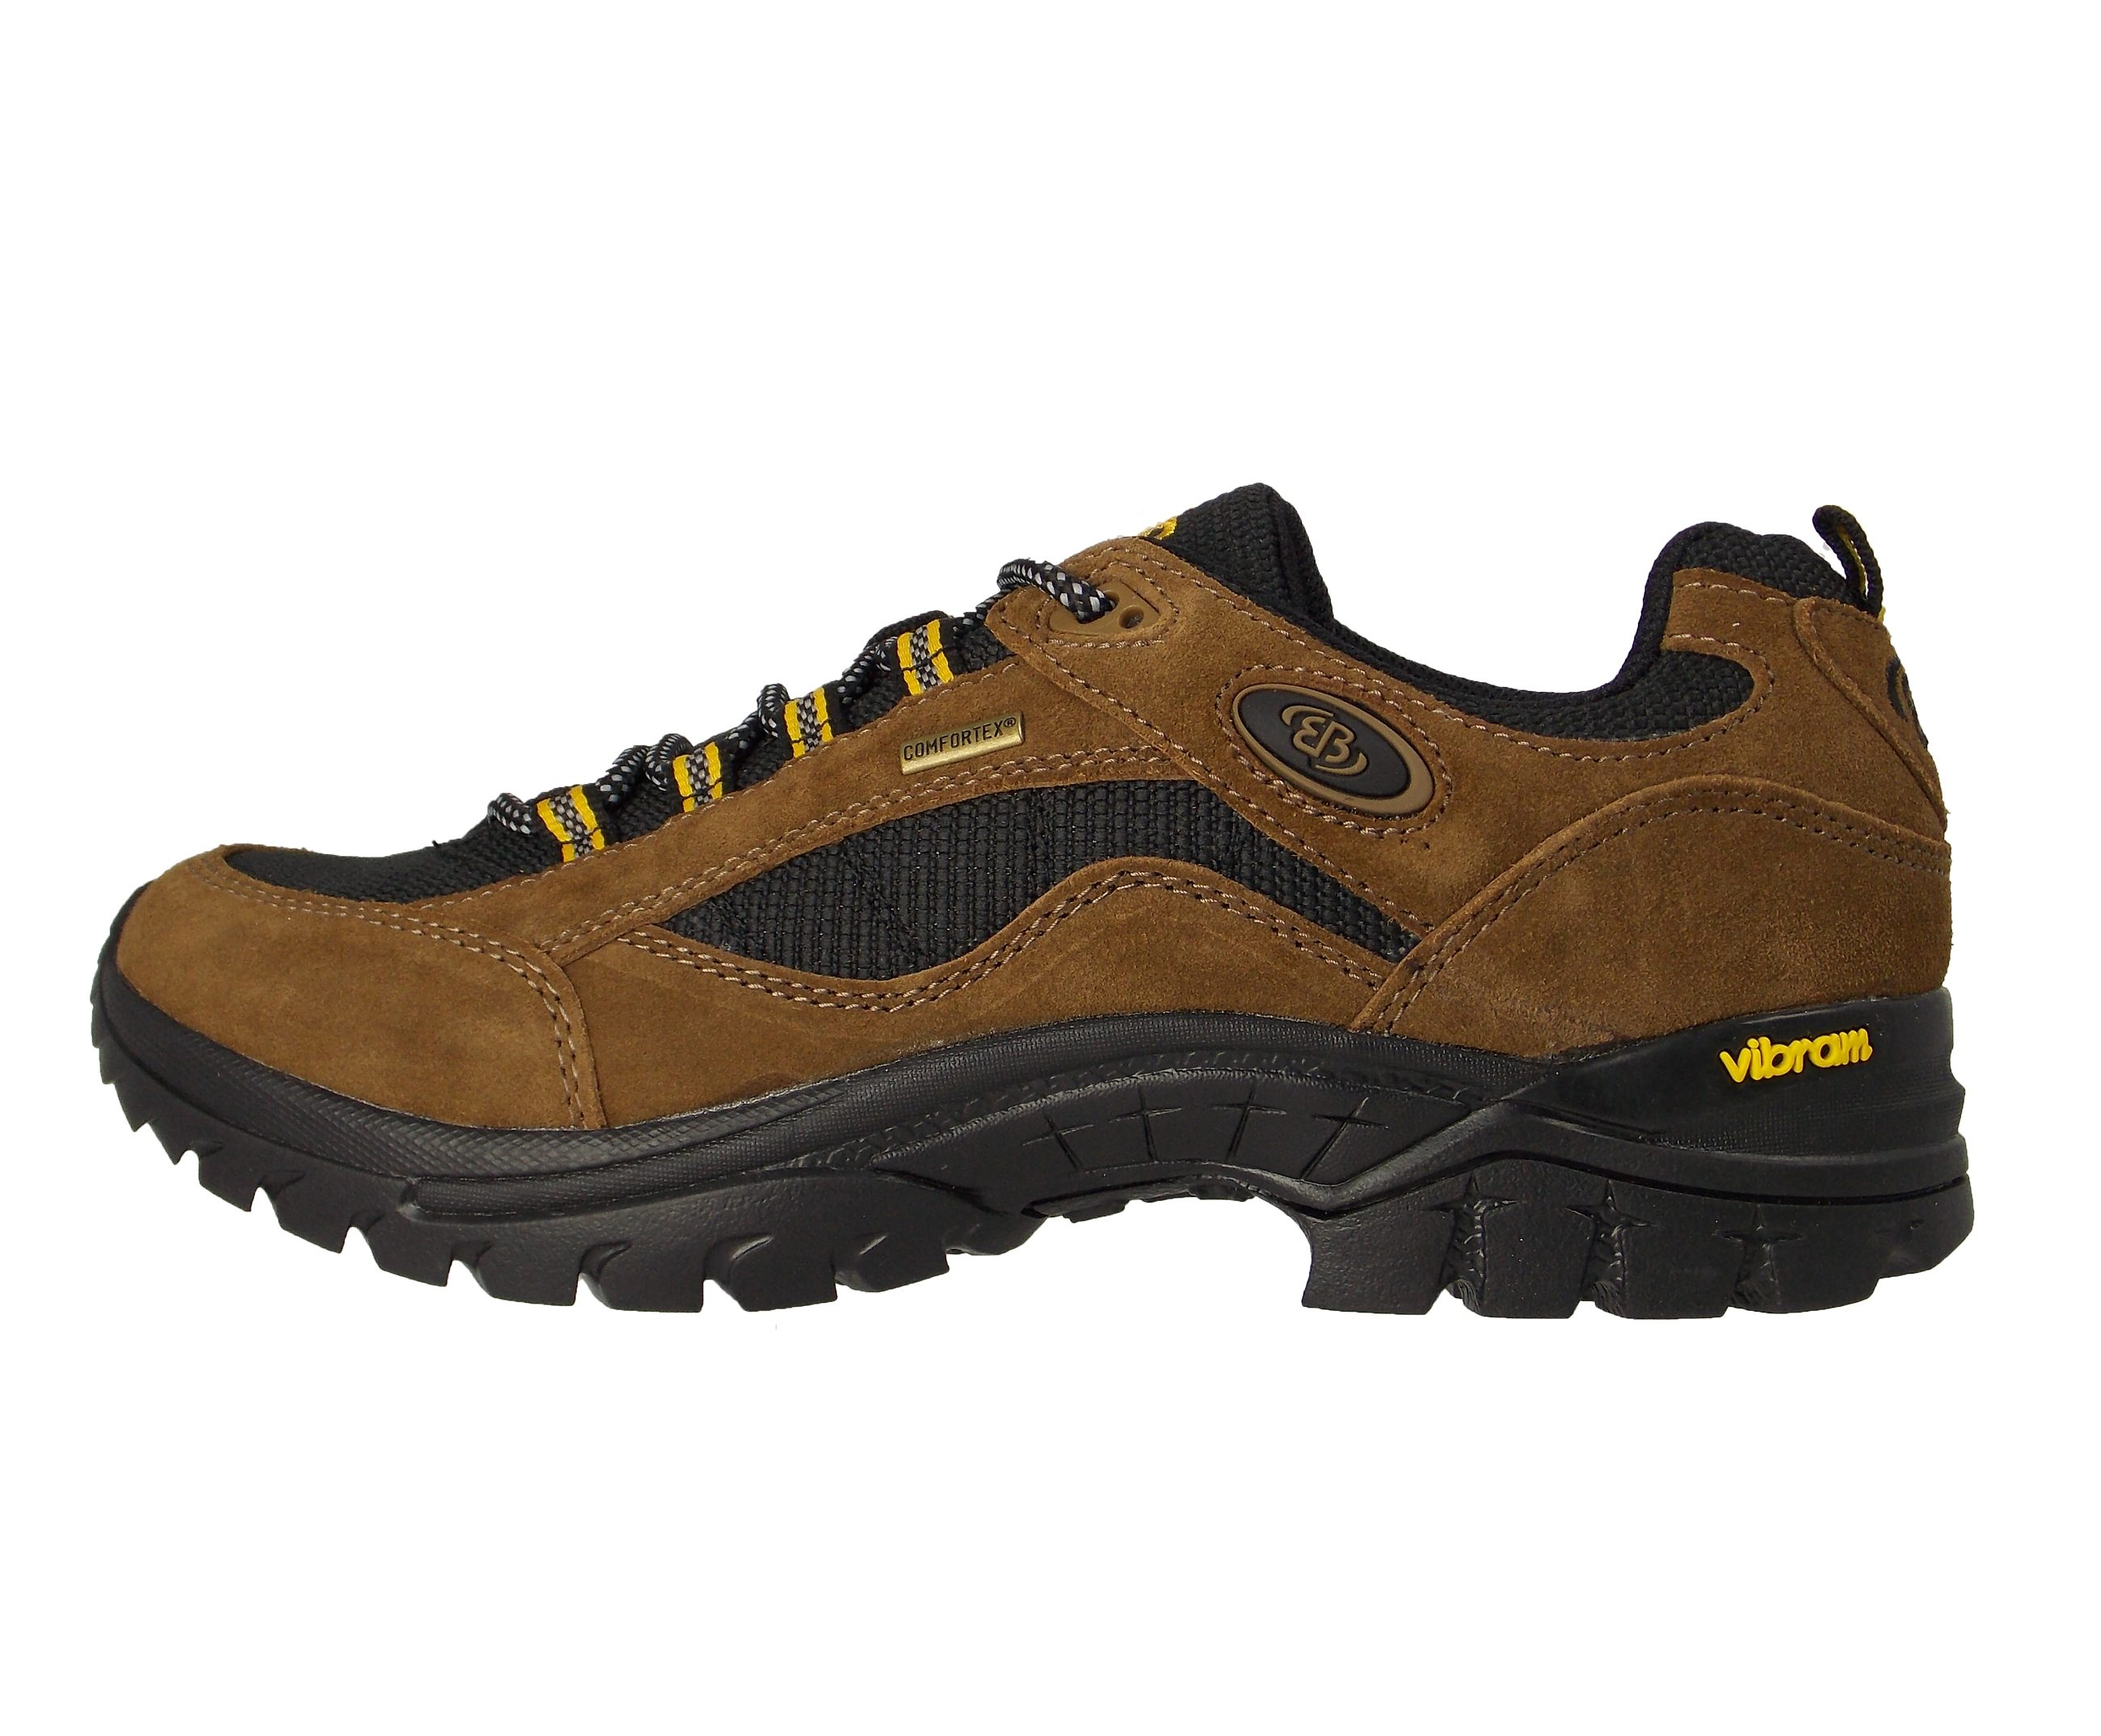 Brütting Funktioneller Outdoorschuh mit VIBRAM-Sohle, COMFORTEX-Membrane GRAND CANYON online kaufen  braun#ft5_slash#schwarz#ft5_slash#gelb